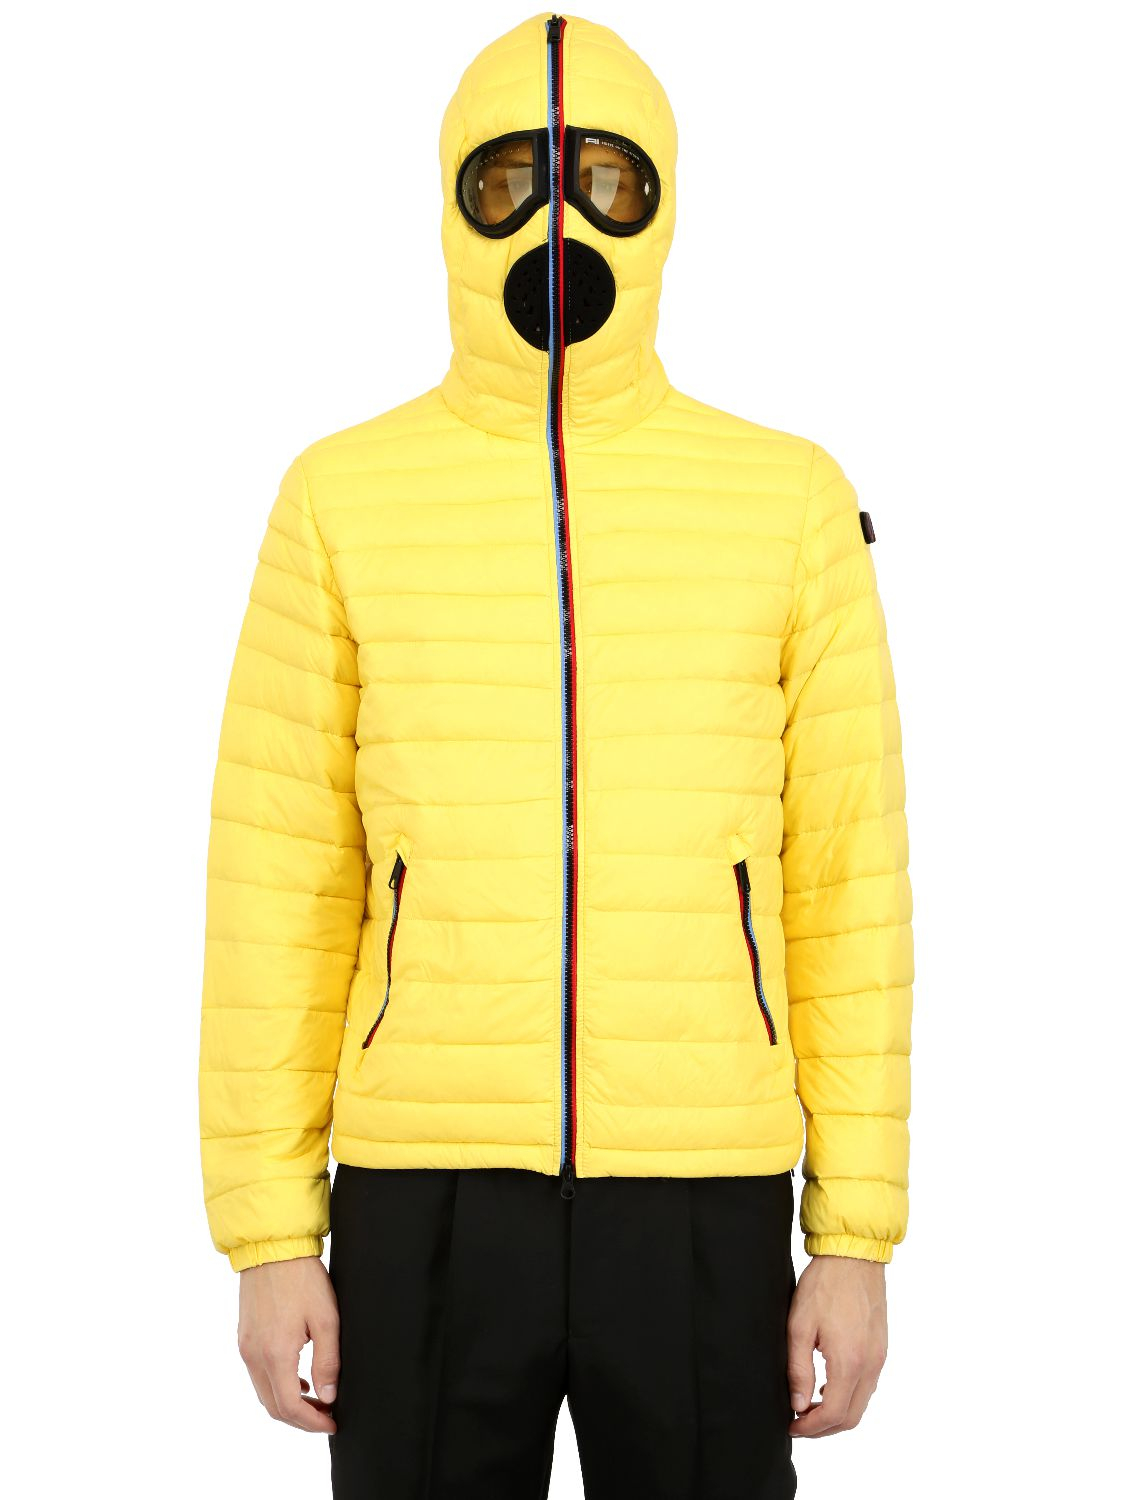 Ai Riders On The Storm Zip Up Nylon Down Jacket In Yellow